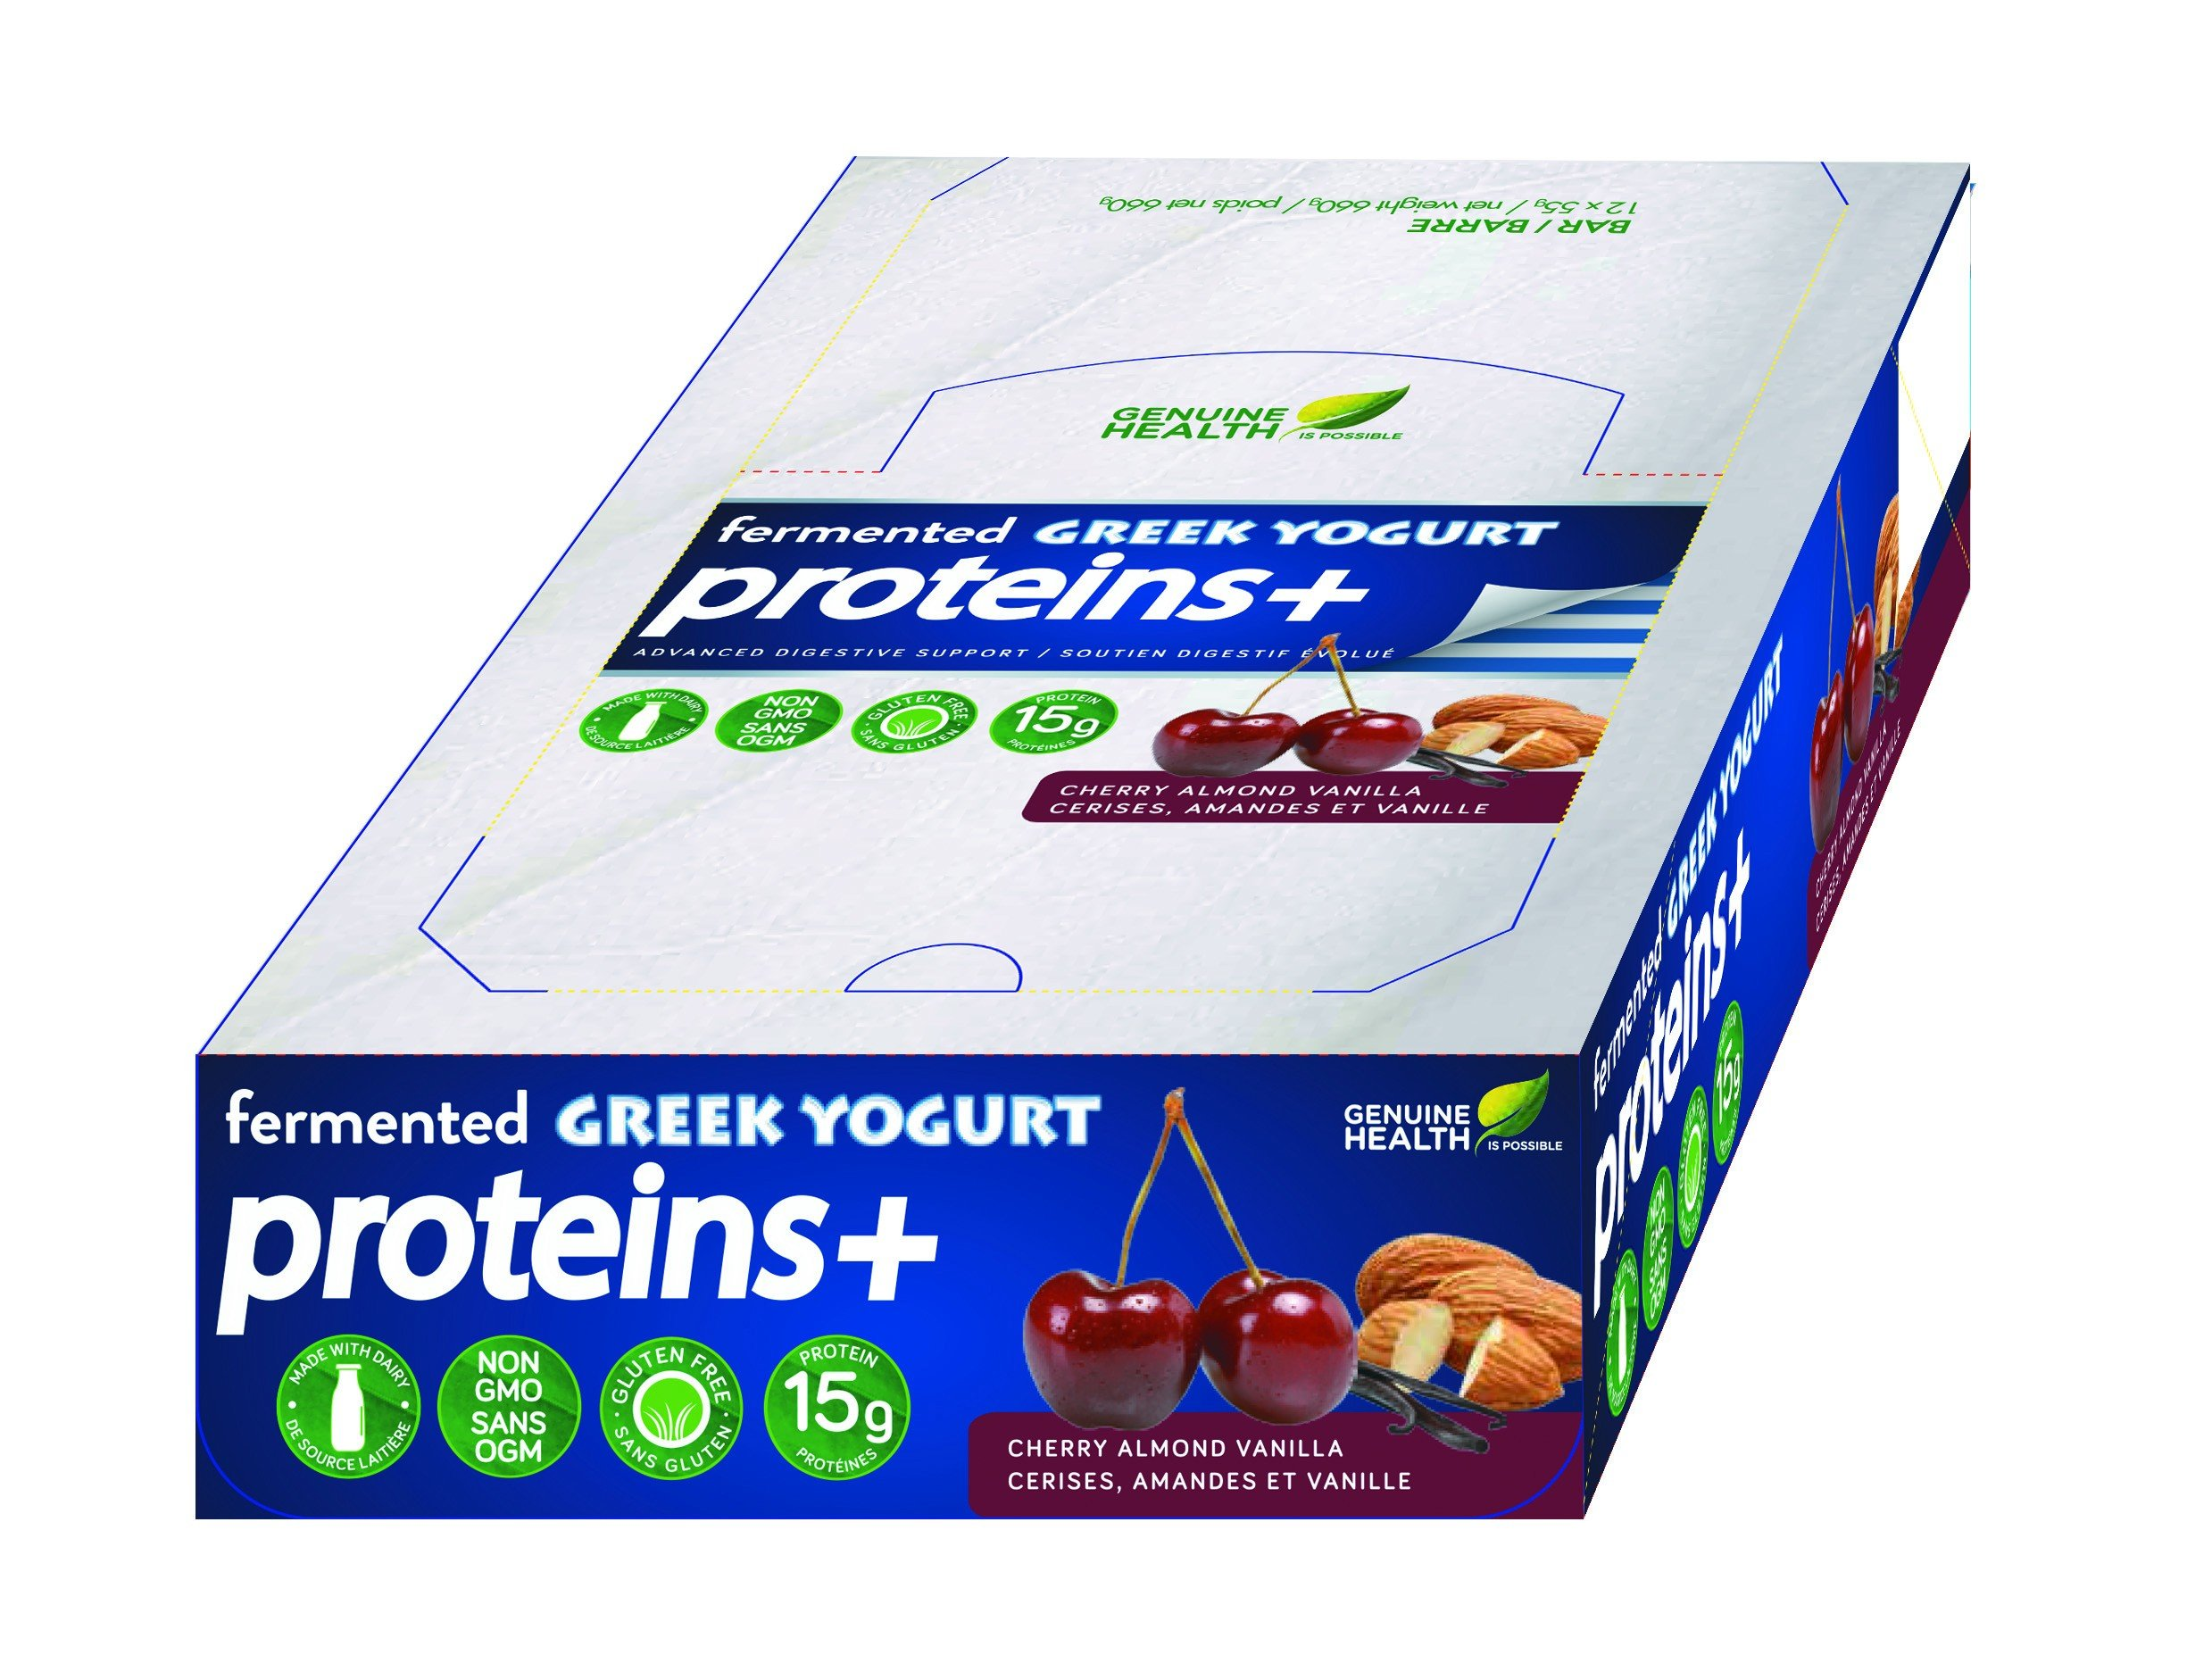 Genuine Health Fermented Greek Yogurt Proteins+ Cherry Almond Vanilla Provides Extra Protein After Your Workouts And Digestive Support